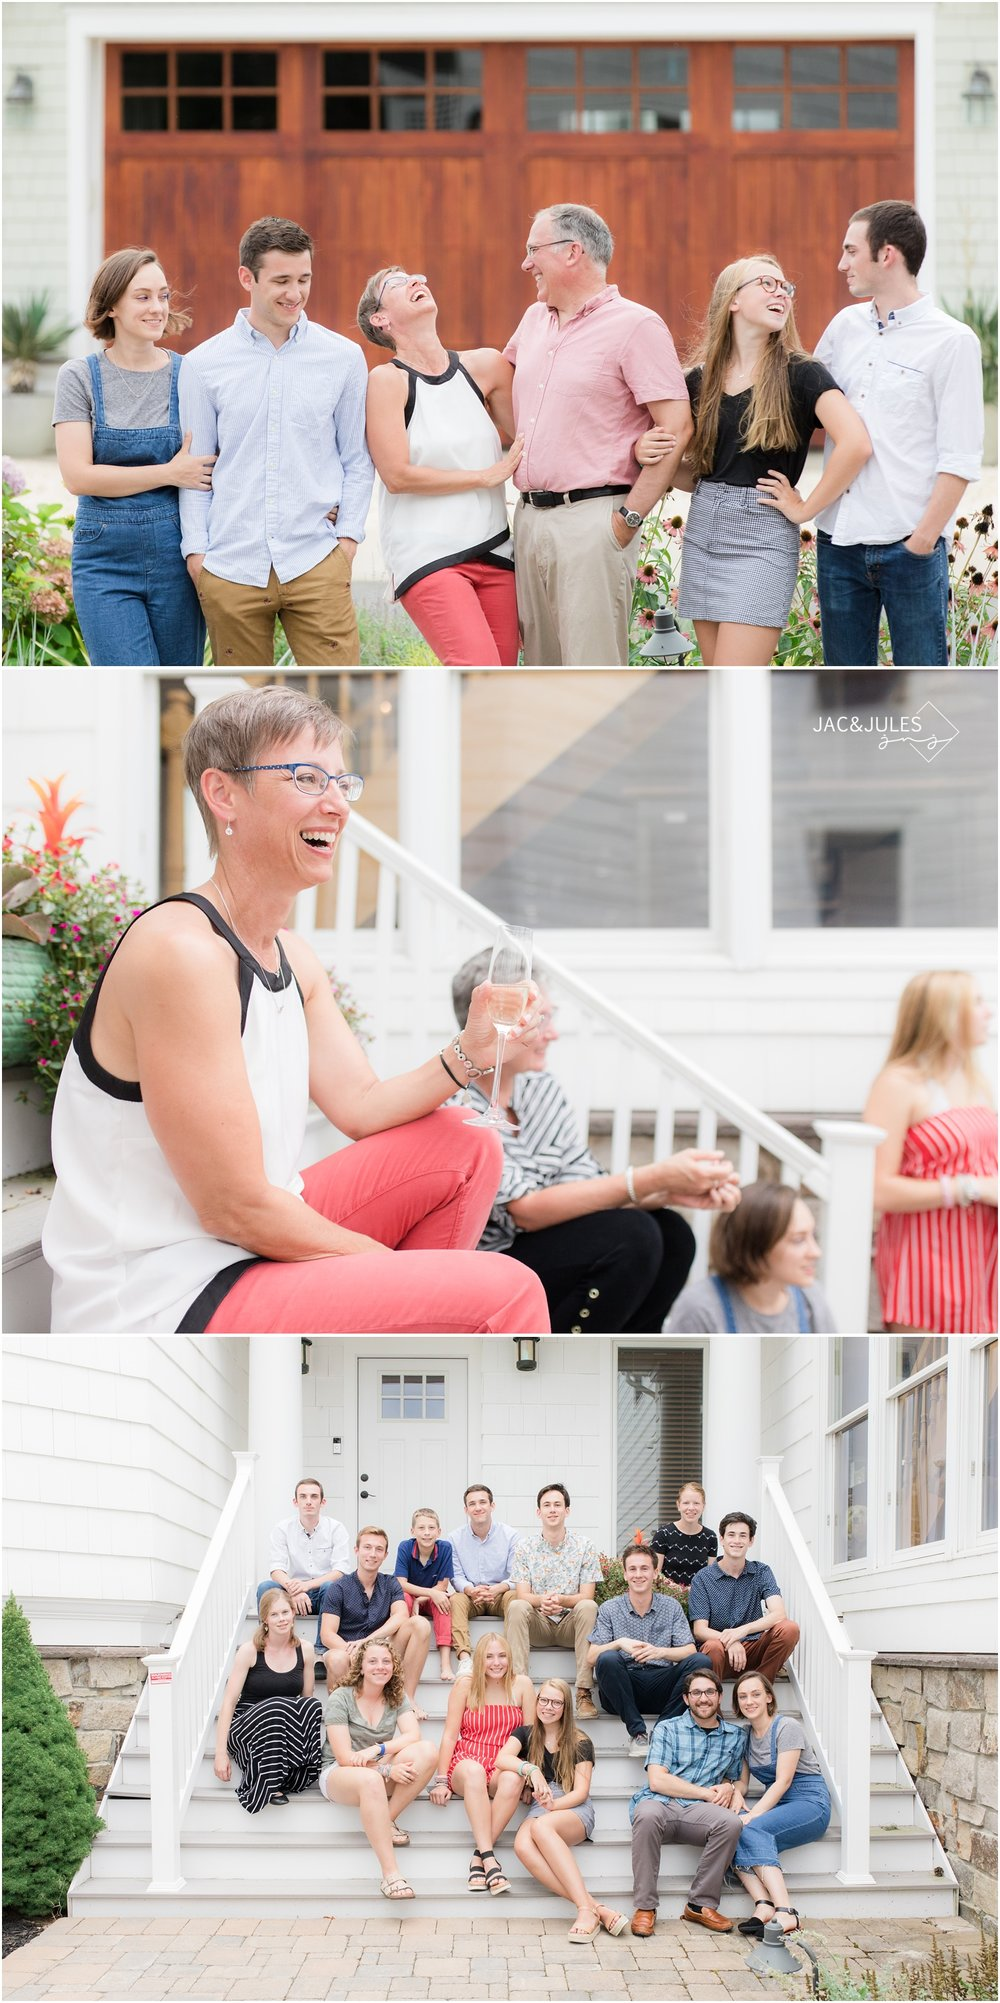 fun photos from family reunion hanging out on the front step at home in Mantoloking, NJ.